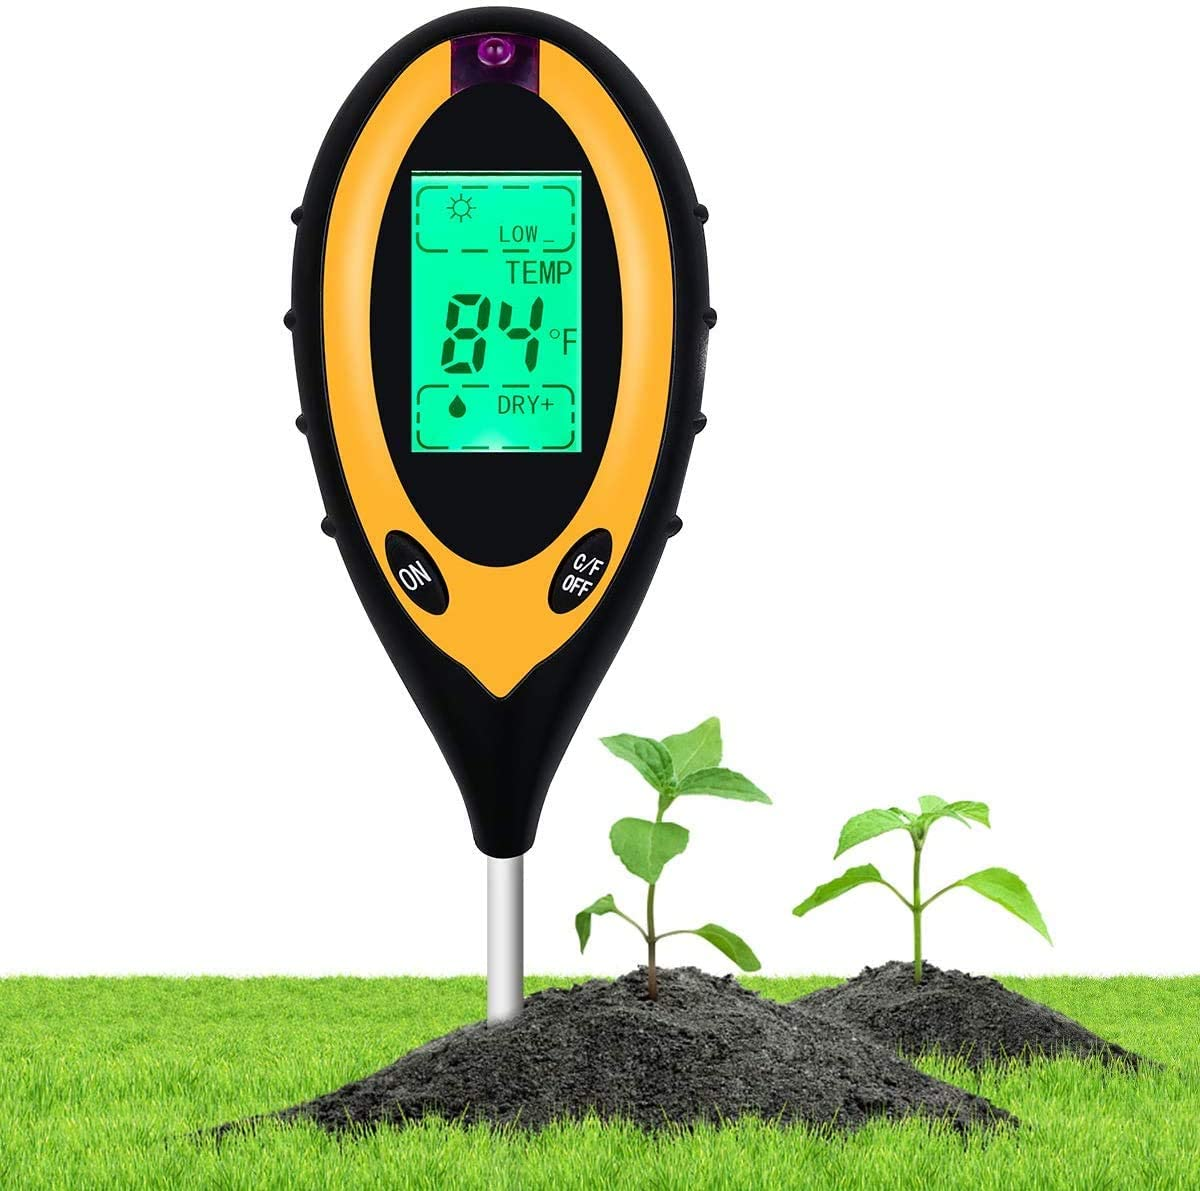 Beauty HAO 2021 Upgraded Soil pH Meter Soil Tester, 4 in 1 Soil Test Kit, pH Moisture Temperature Light Water Tester and Monitor, Testing Kits for Garden, Farm, Lawn, Indoor and Outdoor(H)